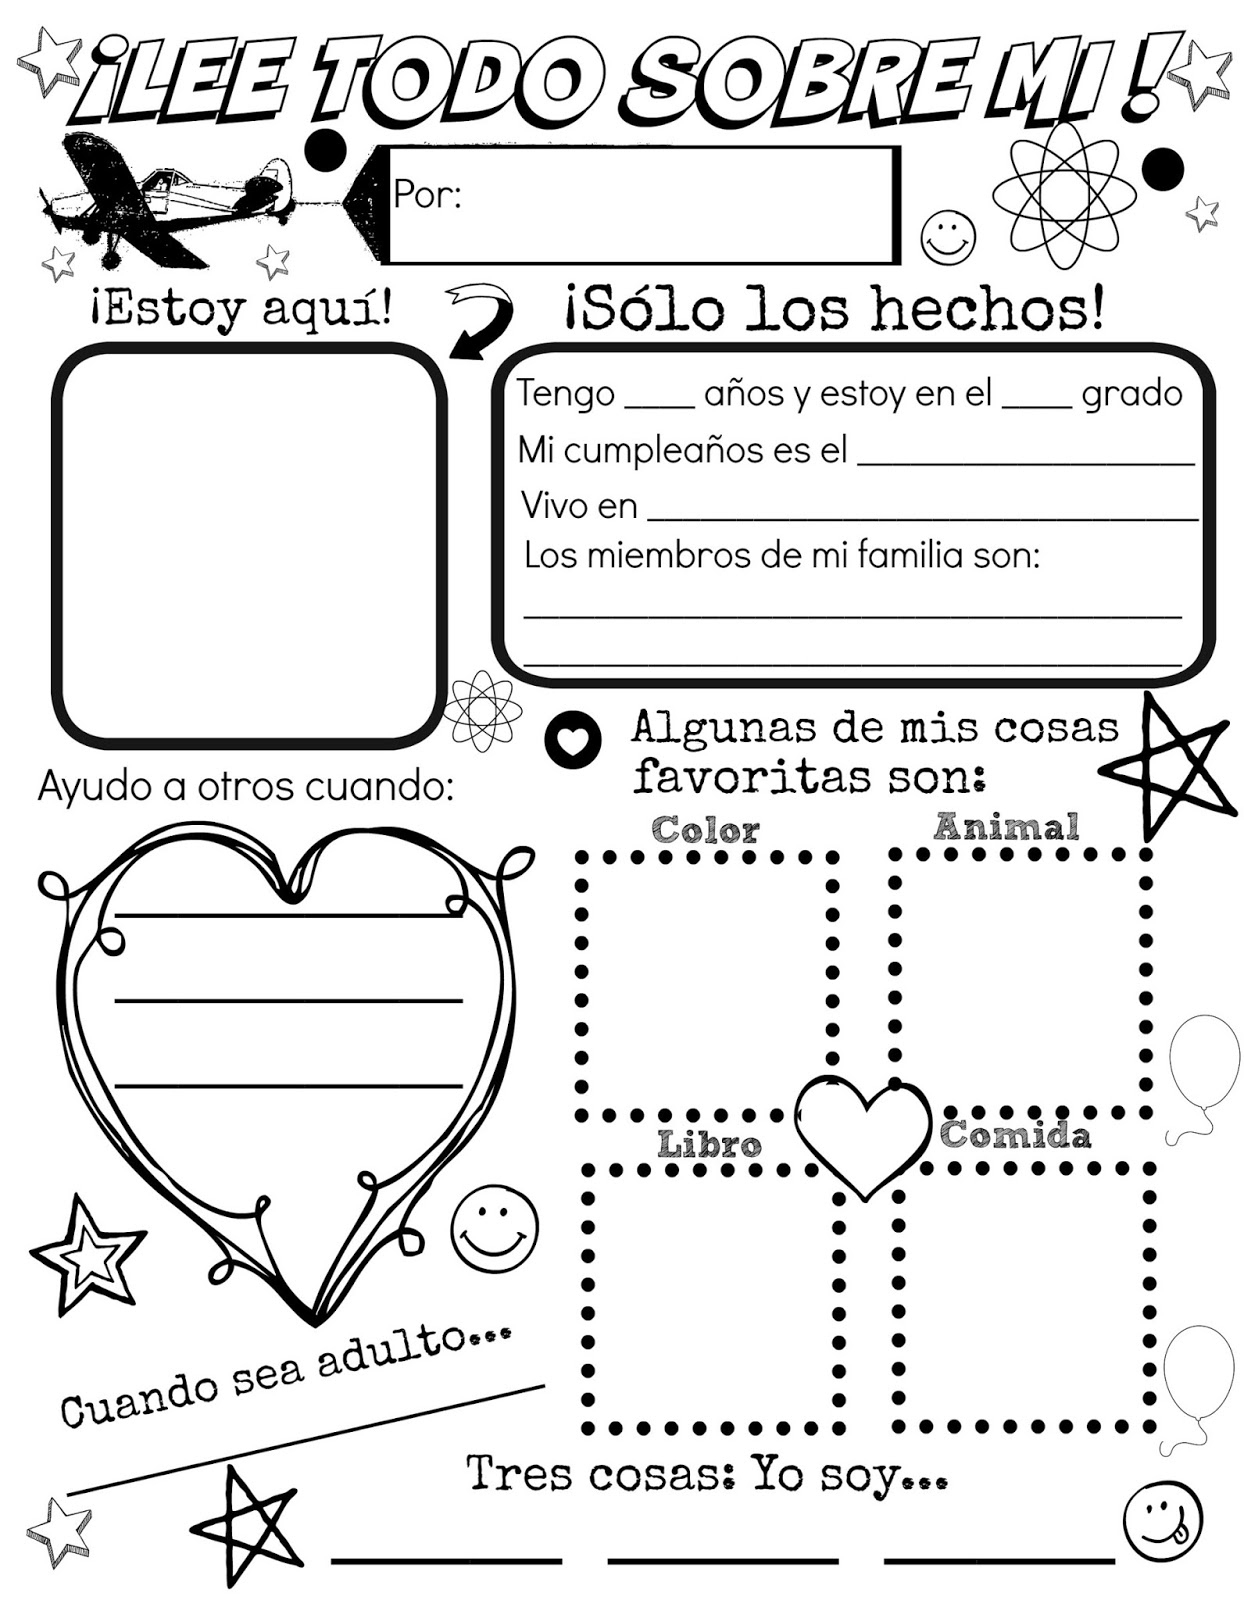 All About Me {Free Spanish Printable} | Discovering The World - All About Me Free Printable